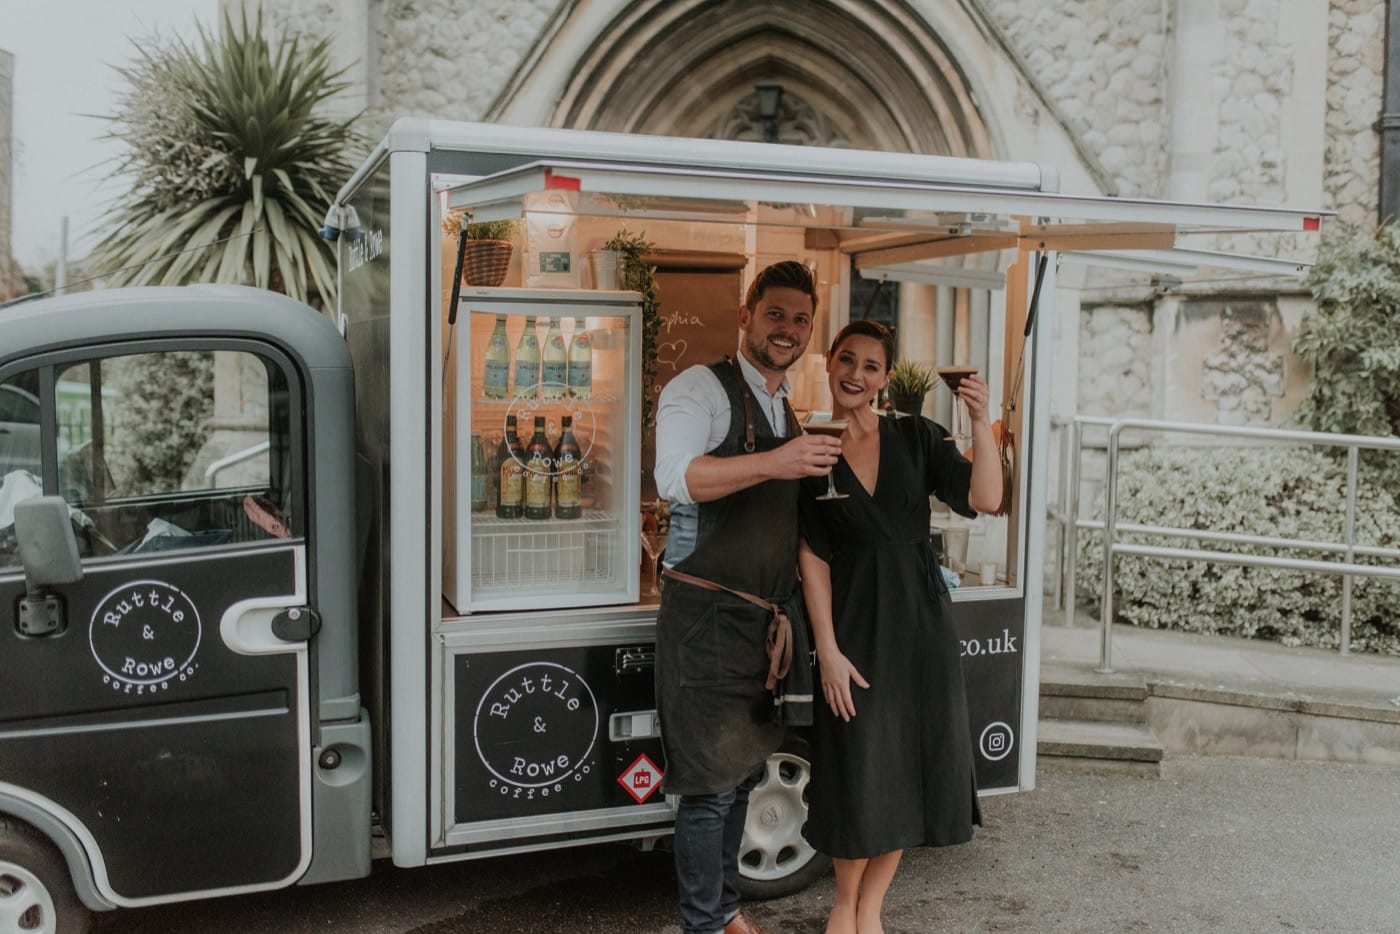 Feast-It-Ruttle-and-Rowe-Mobile-Coffee-Van-Street-Food-Espresso-Martinis-Speciality-Coffee-Event-Catering-Wedding-Catering-Book-Now-twelve